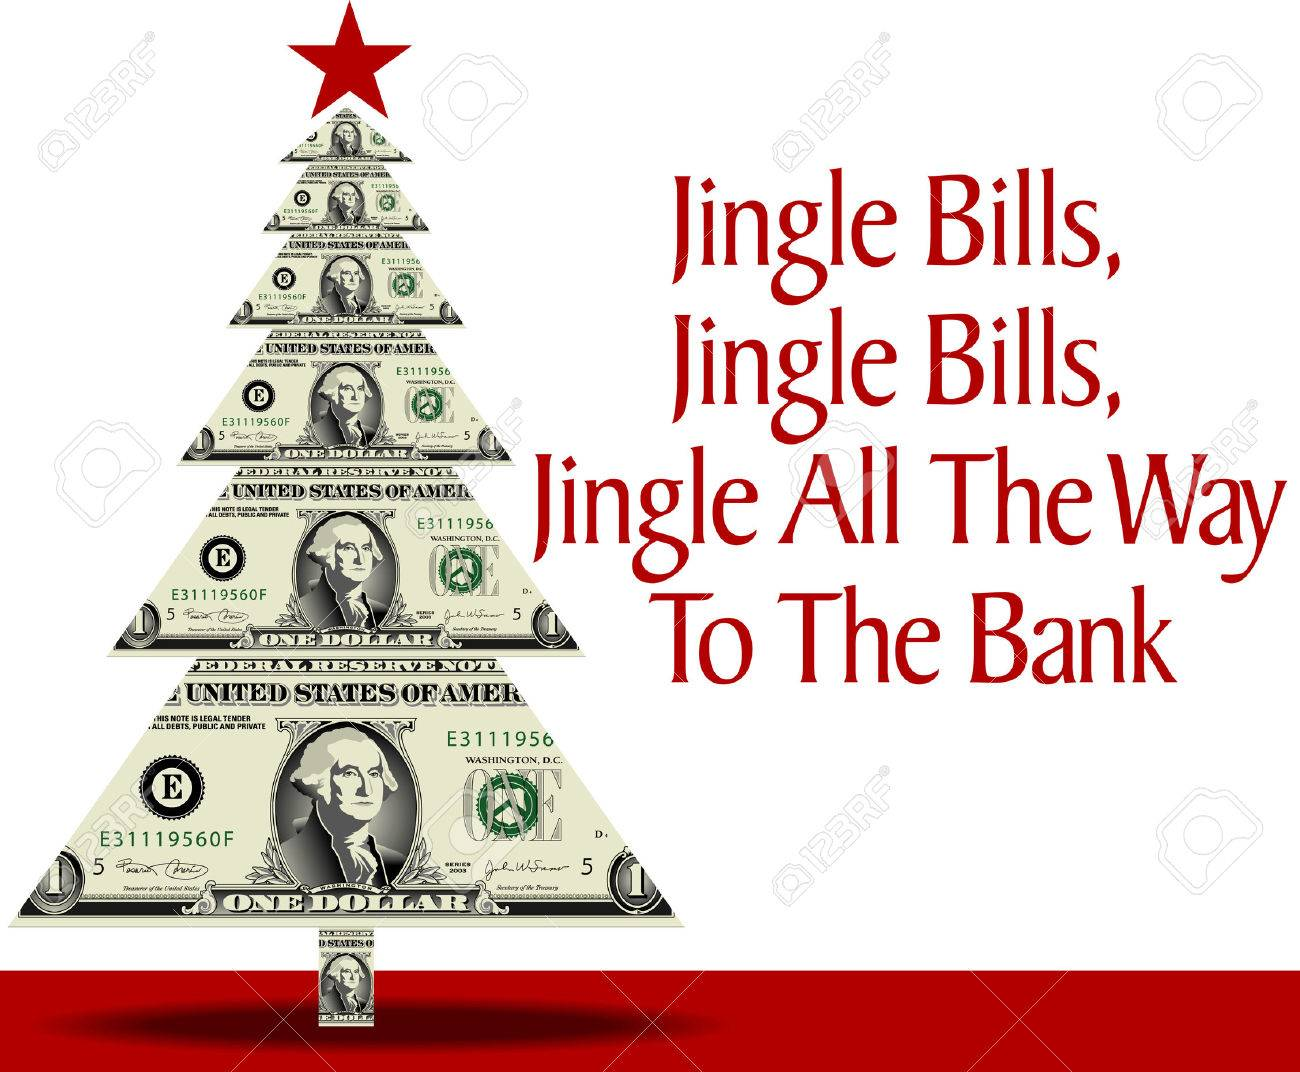 Christmas Tree Bill.A Christmas Tree Made Of Dollar Bills With A Clever Pun As Well